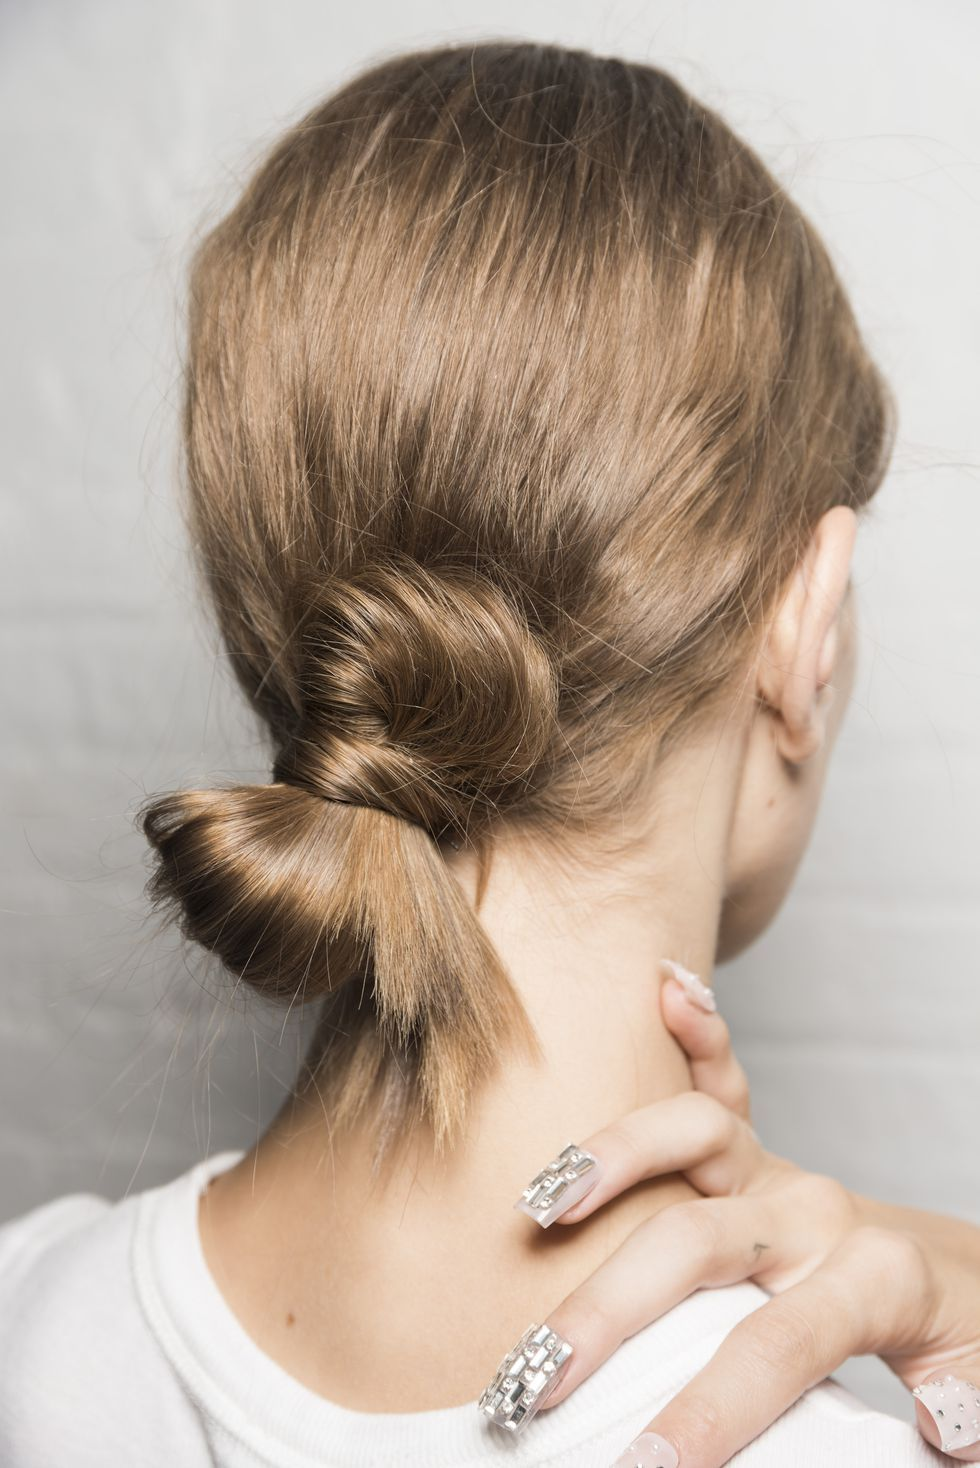 30 Wedding Guest Hairstyle Ideas Wedding Guest Hair Ideas Inspired By The Runway And Red Carpet